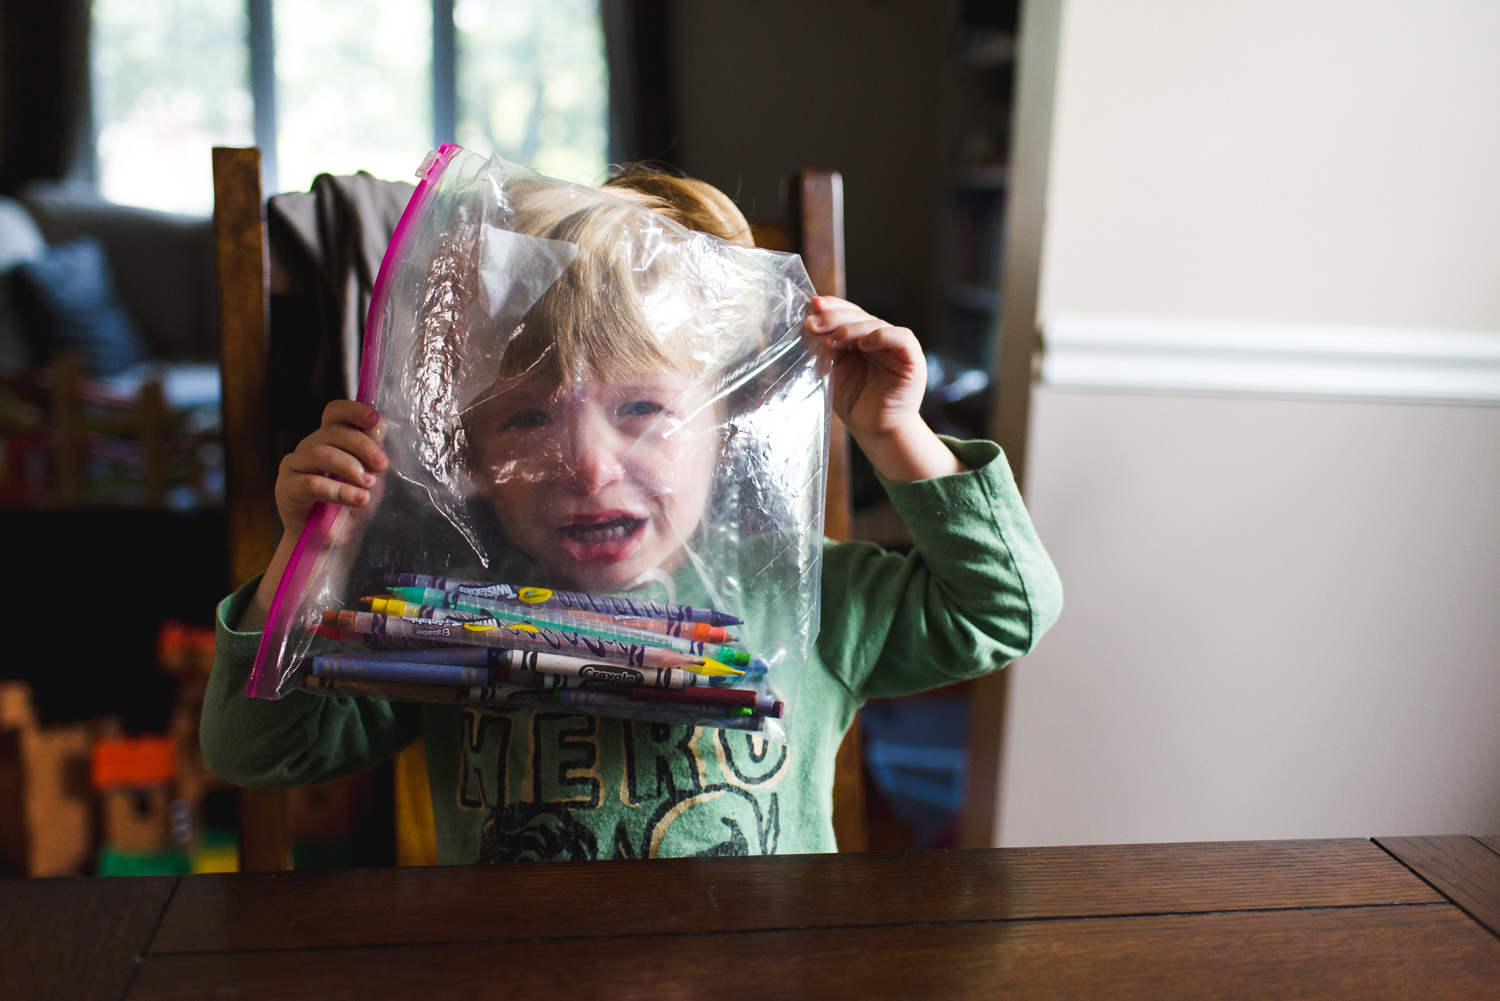 Little boy crying with plastic bag in front of face.